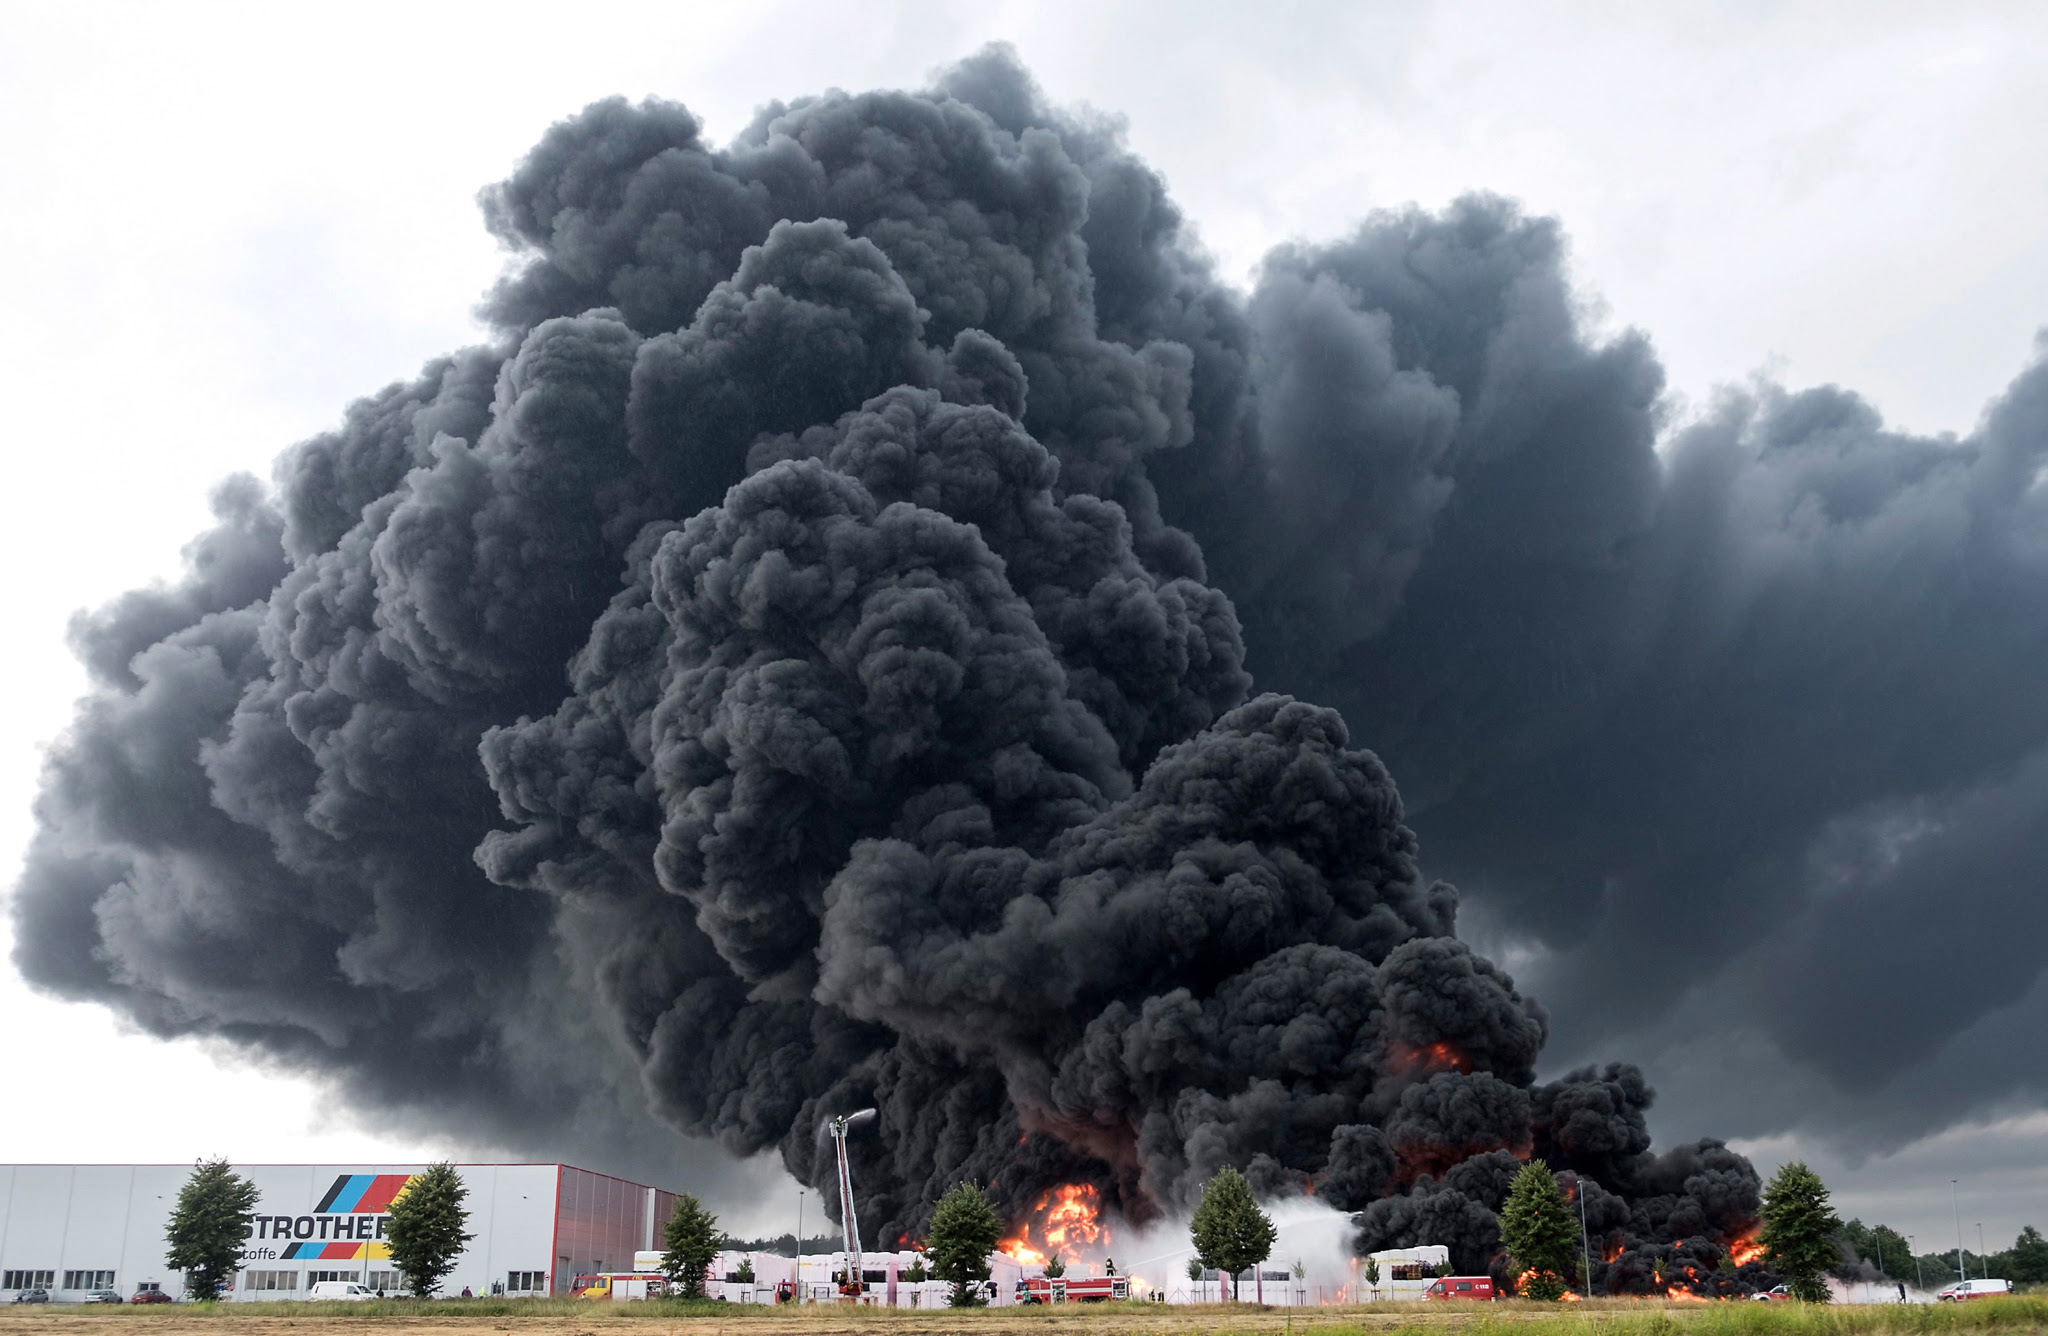 epa05443258 Thick smoke spreads over a burning Styrofoam site while firefighters attempt to put it out in Wittenberge, Germany, 27 July 2016. According to initial information, no one was injured in the factory from Austrian insulation company Austrotherm. Lightning set the giant Styrofoam site on fire and caused millions of euros worth of damage.  EPA/JENS WEGNER